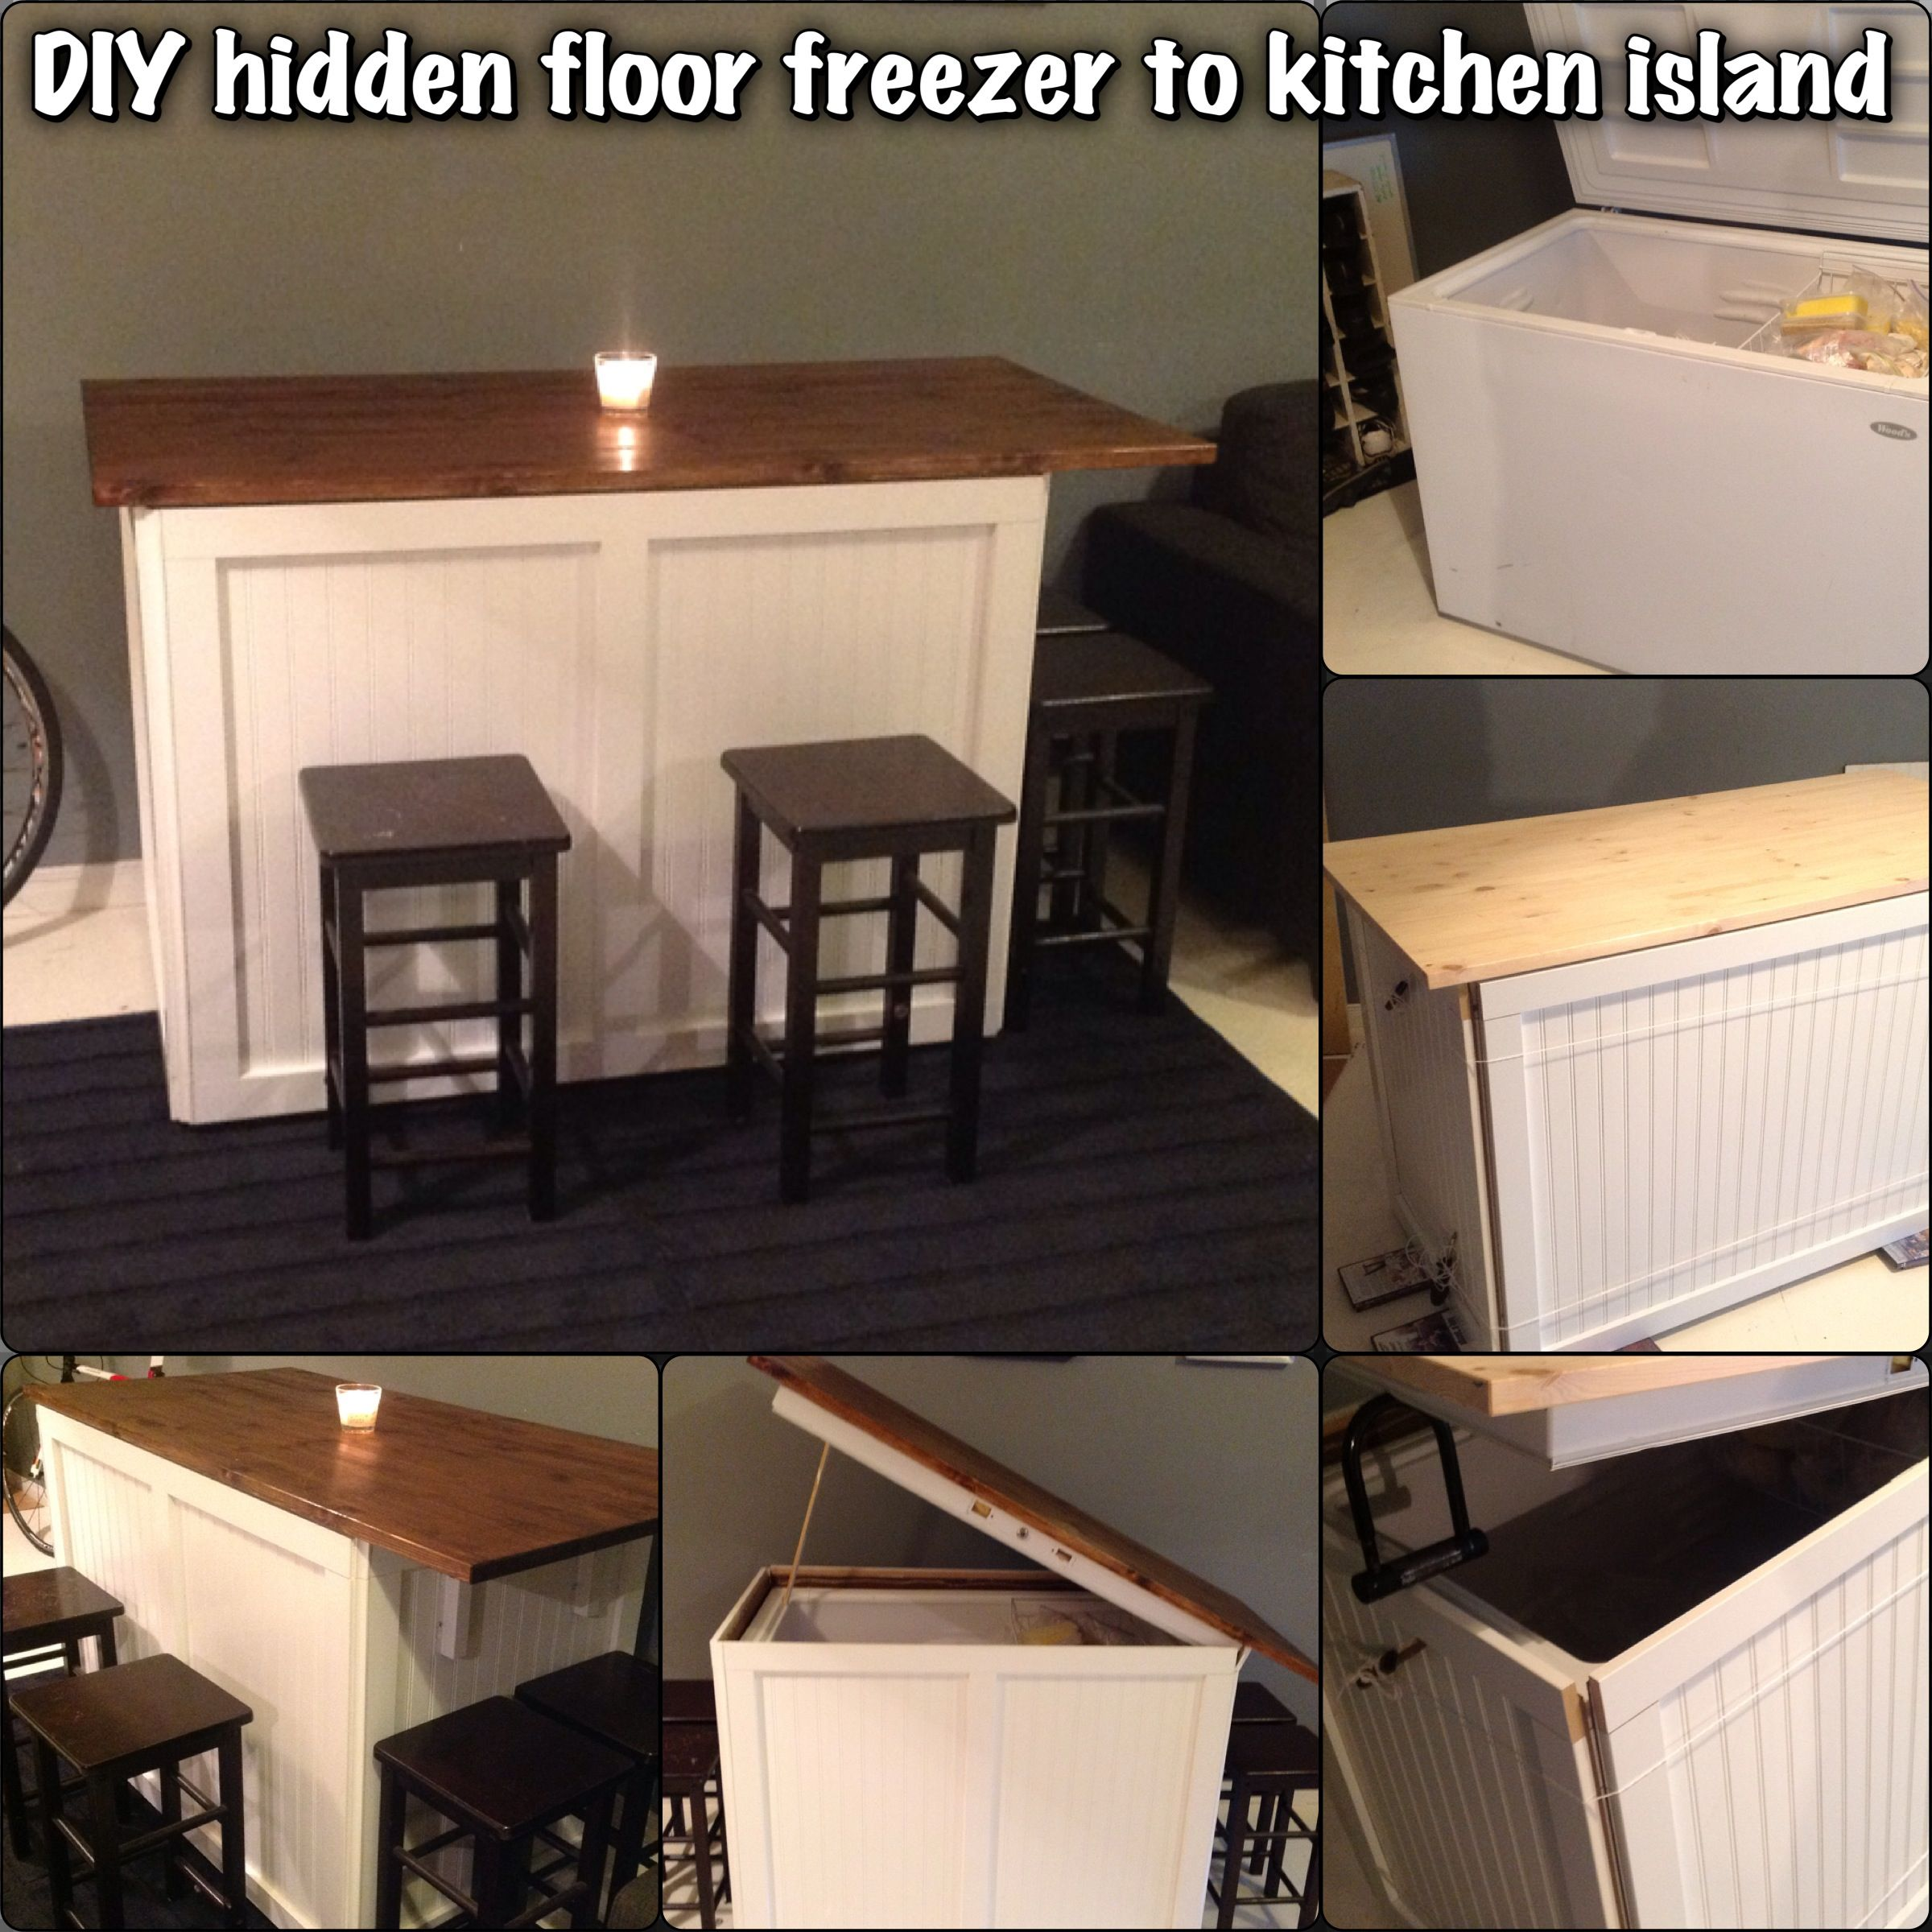 Kitchen Table Or Island - Kitchen island floor freezer this is a fun diy project i started i had